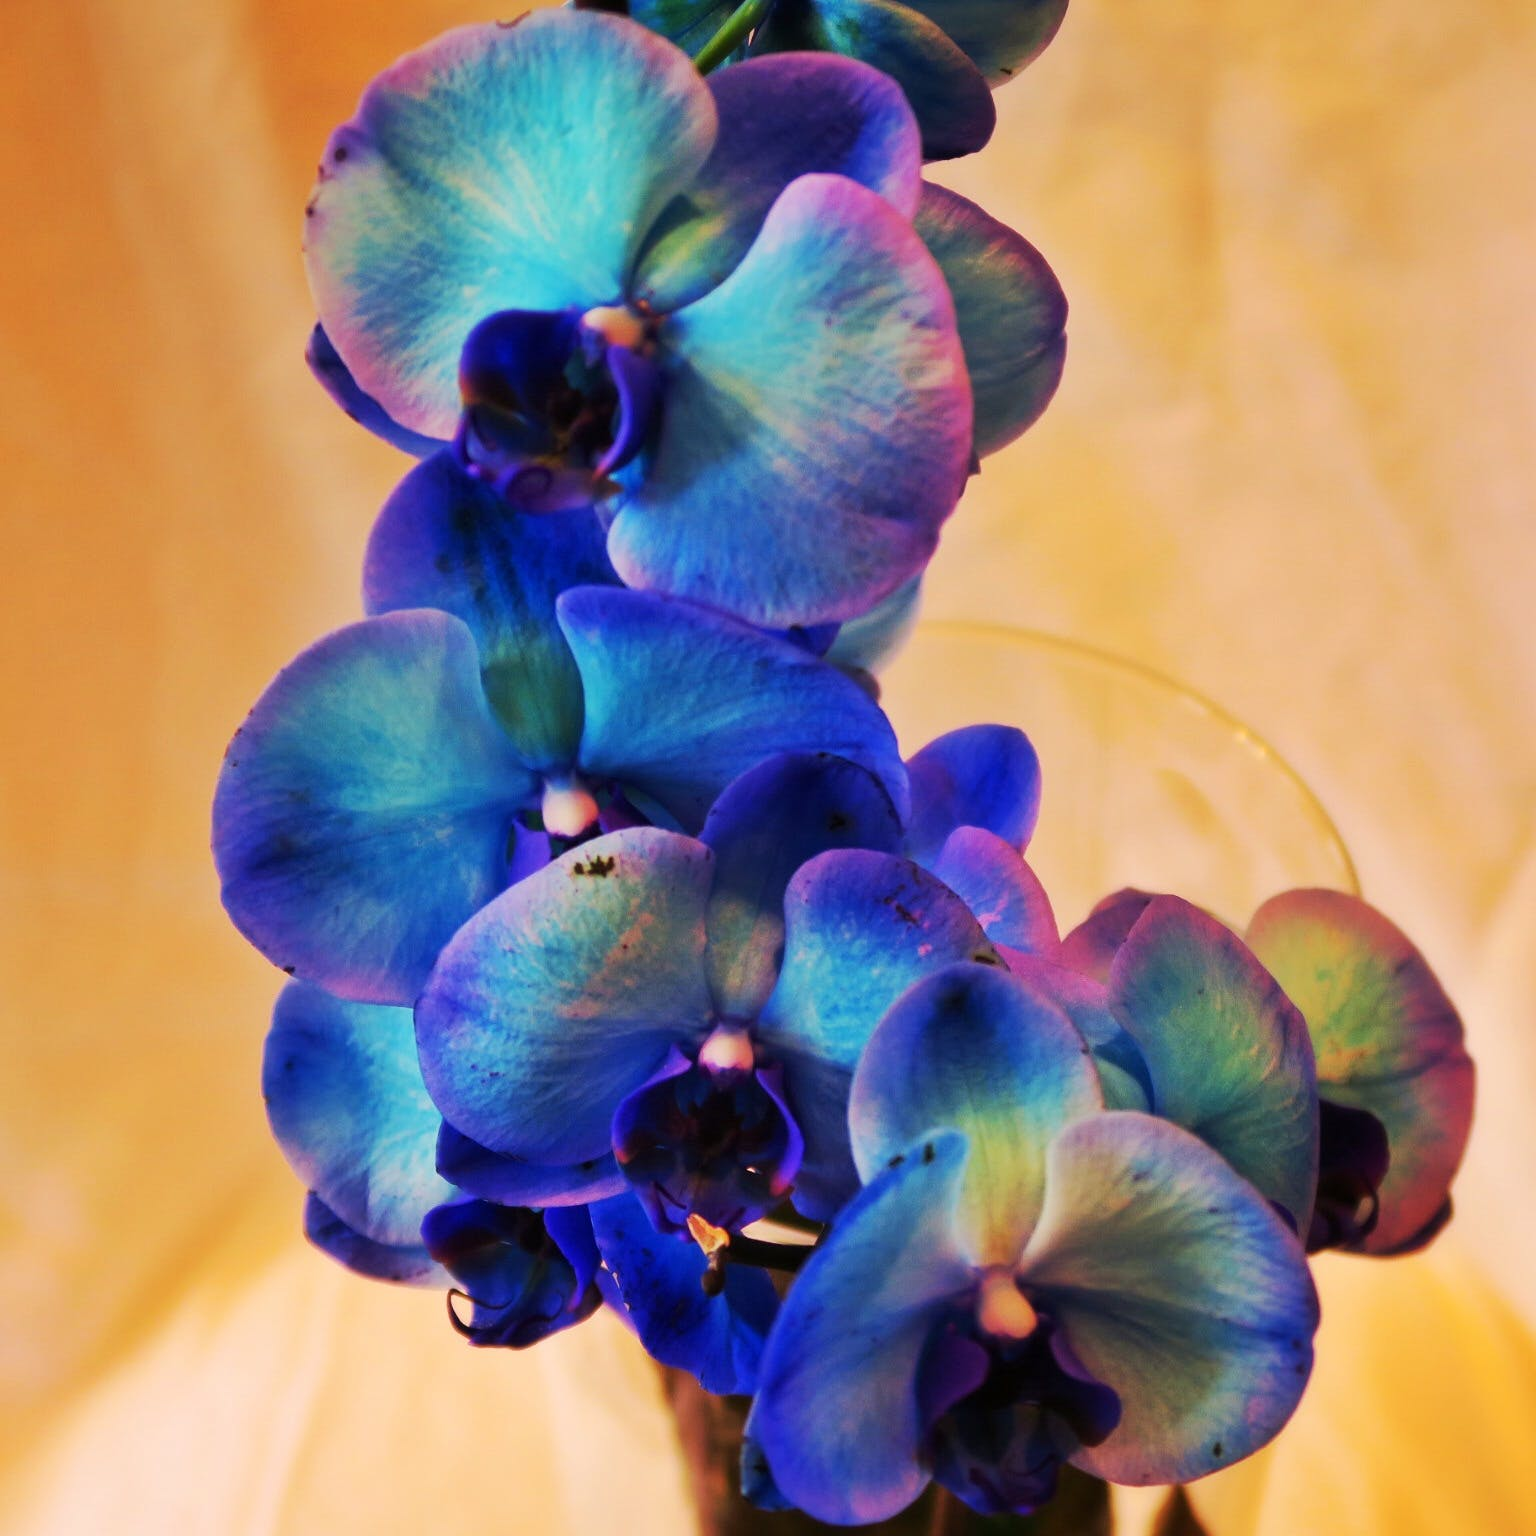 Free stock photo of flowers, blue, flora, orchid